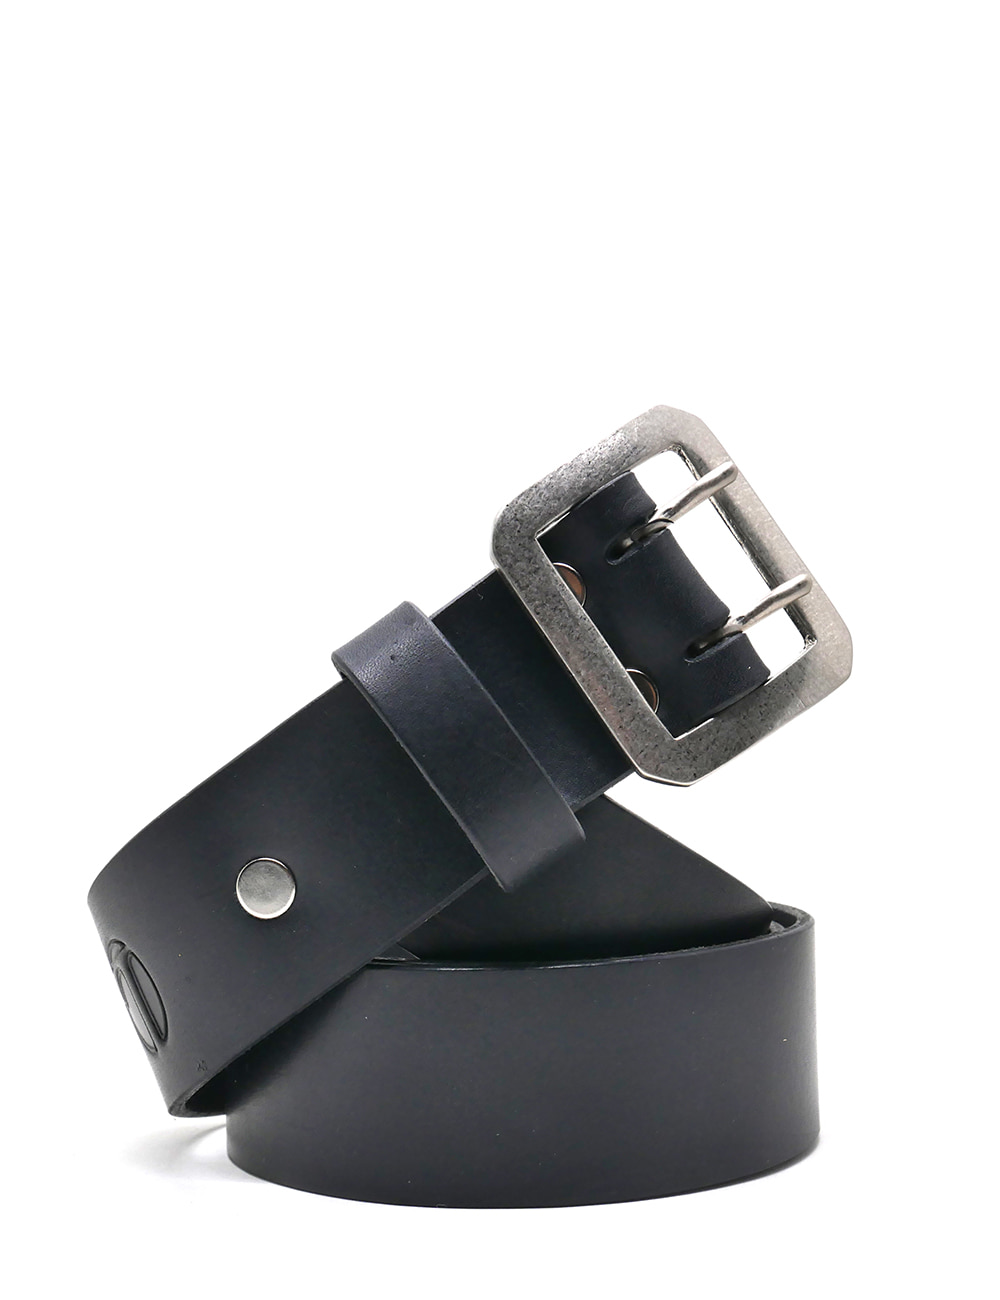 [LEATHER SMITH]  composury double belt(black&silver)